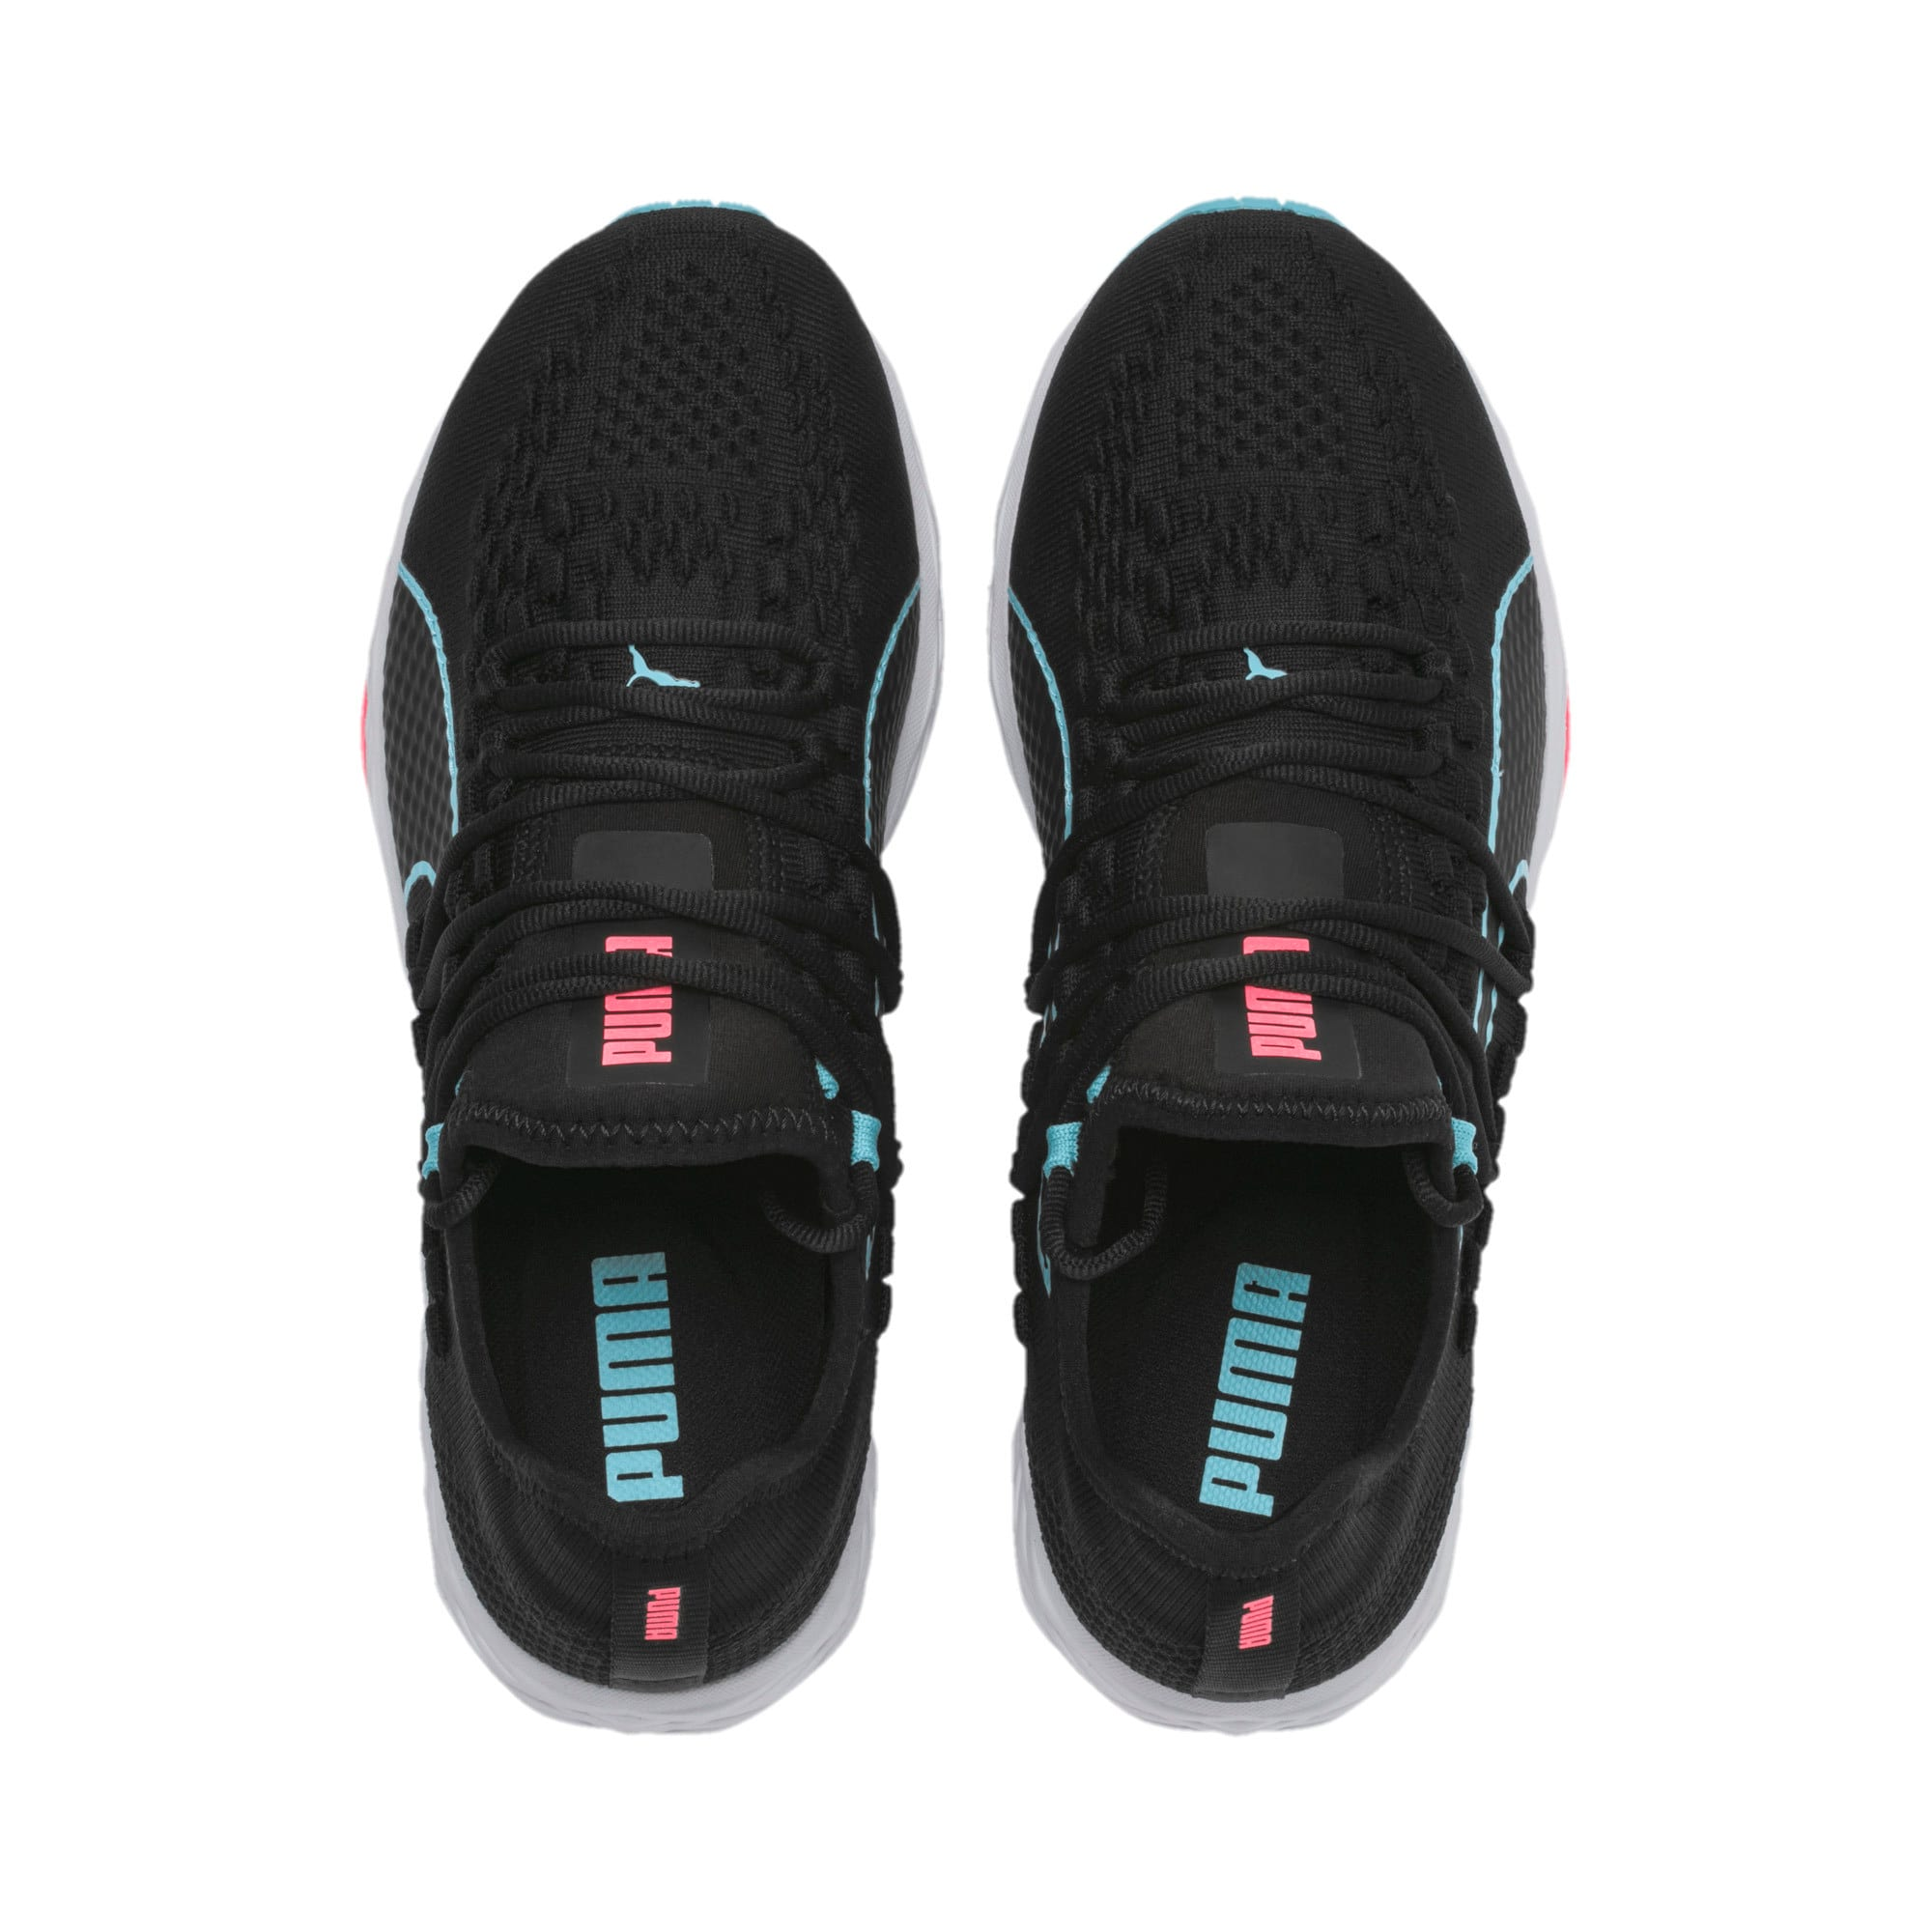 SPEED 300 RACER Women's Running Shoes, Black-Milky Blue-Pink Alert, large